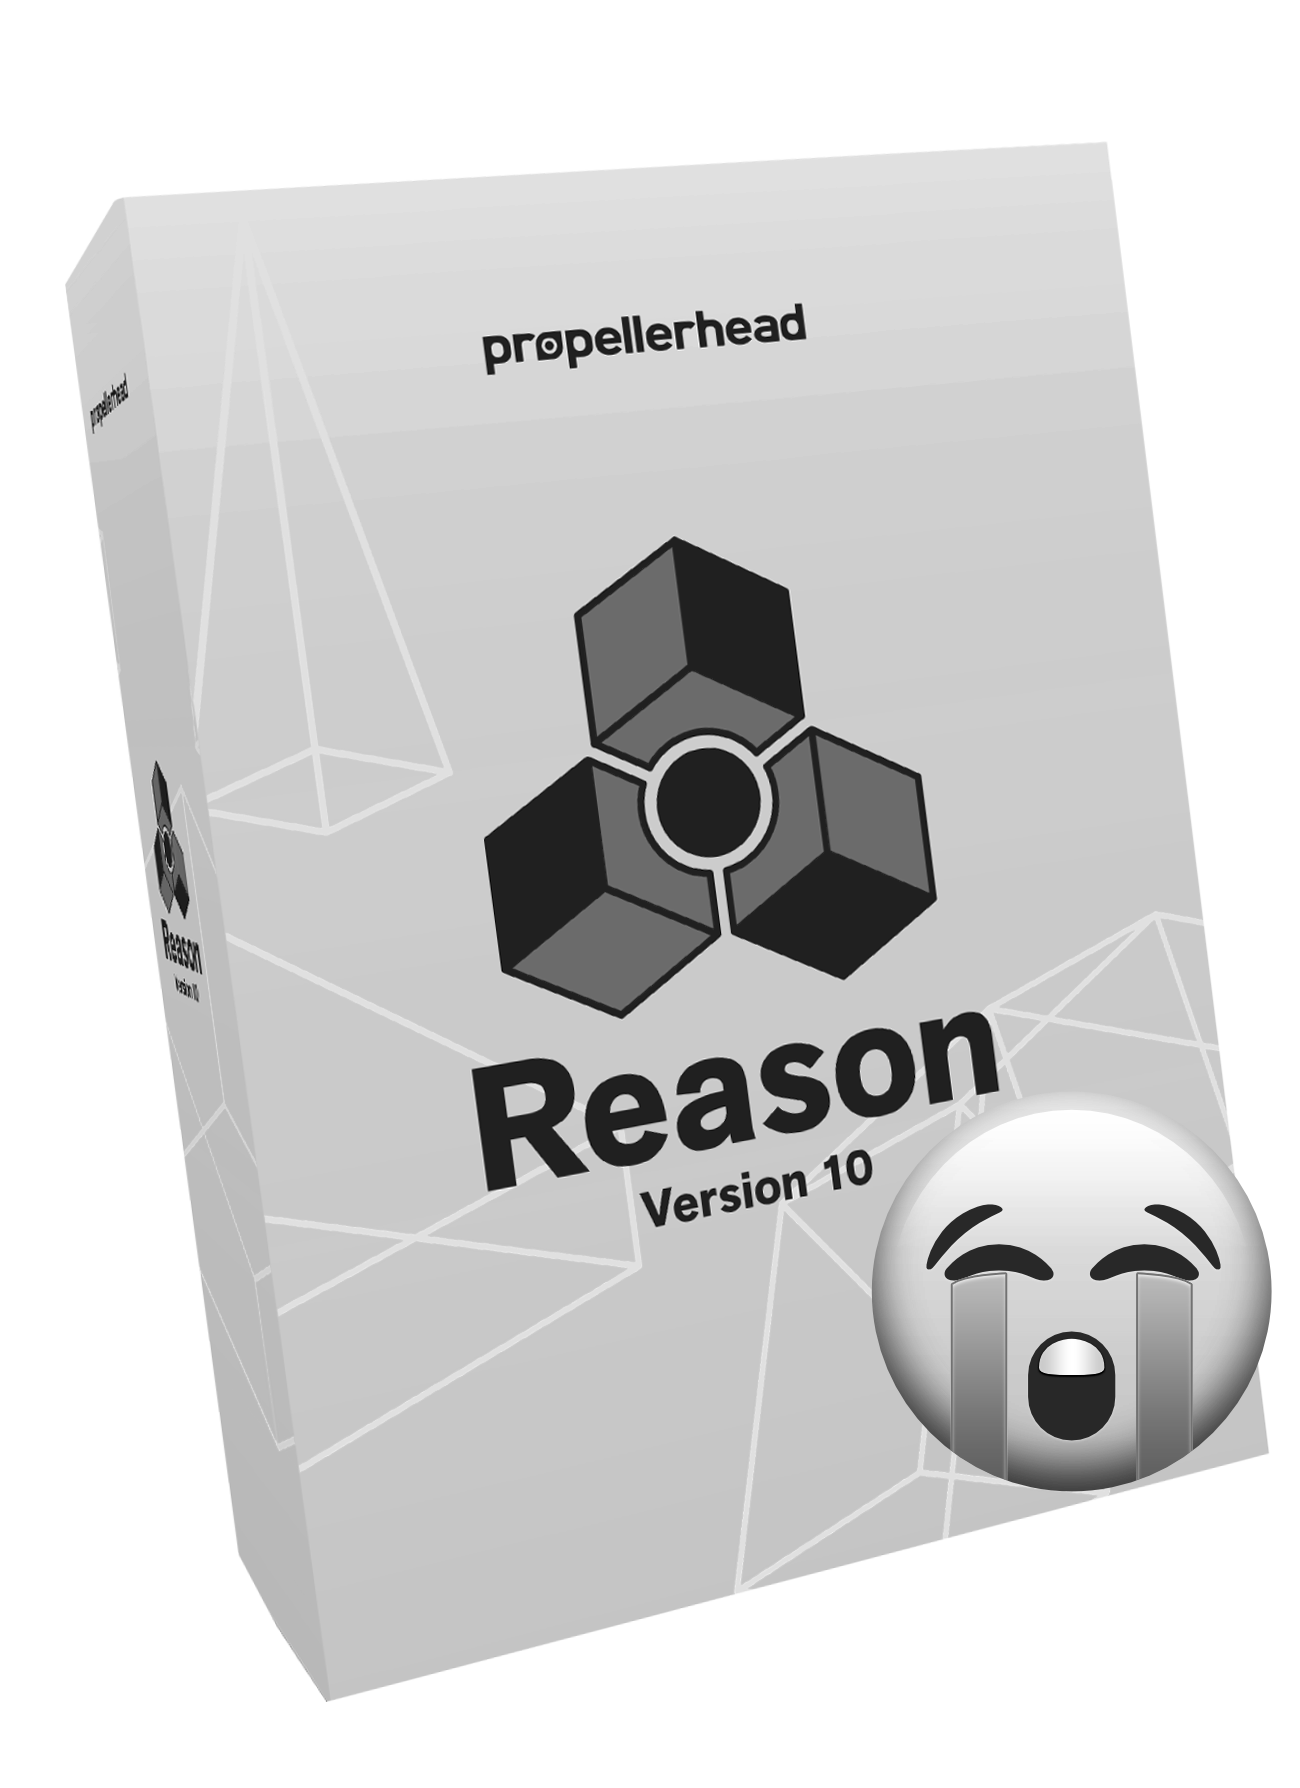 Propellerhead Reason 10 Box Cover Image In B&W With Crying Emoji